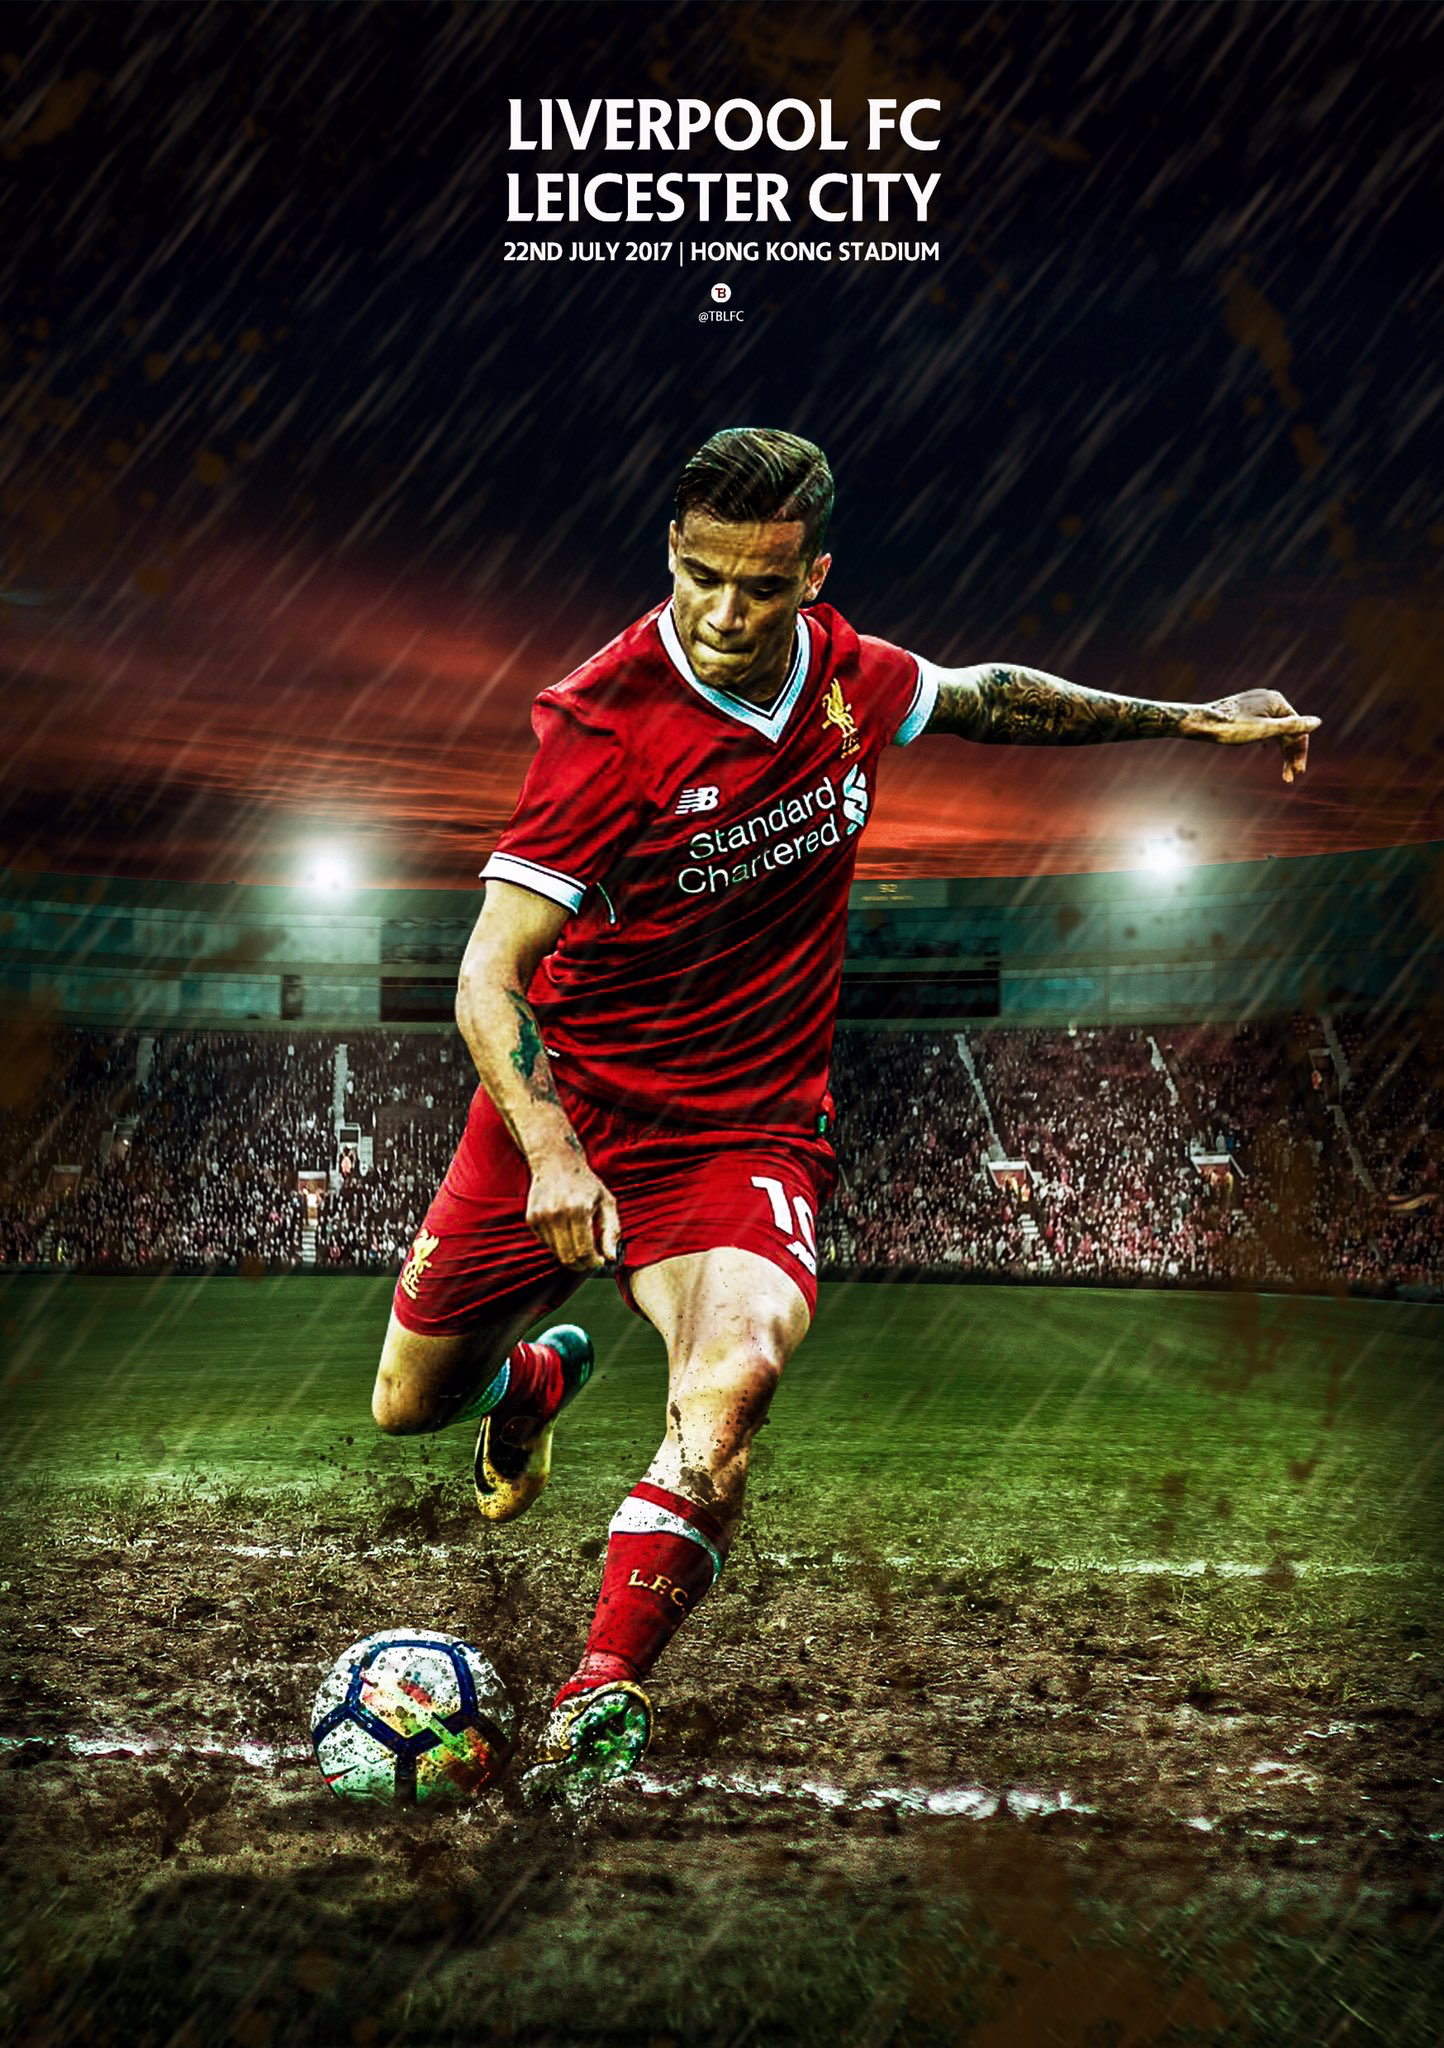 Pin by Des on LFC Matchday Designs 2017-18 | Liverpool